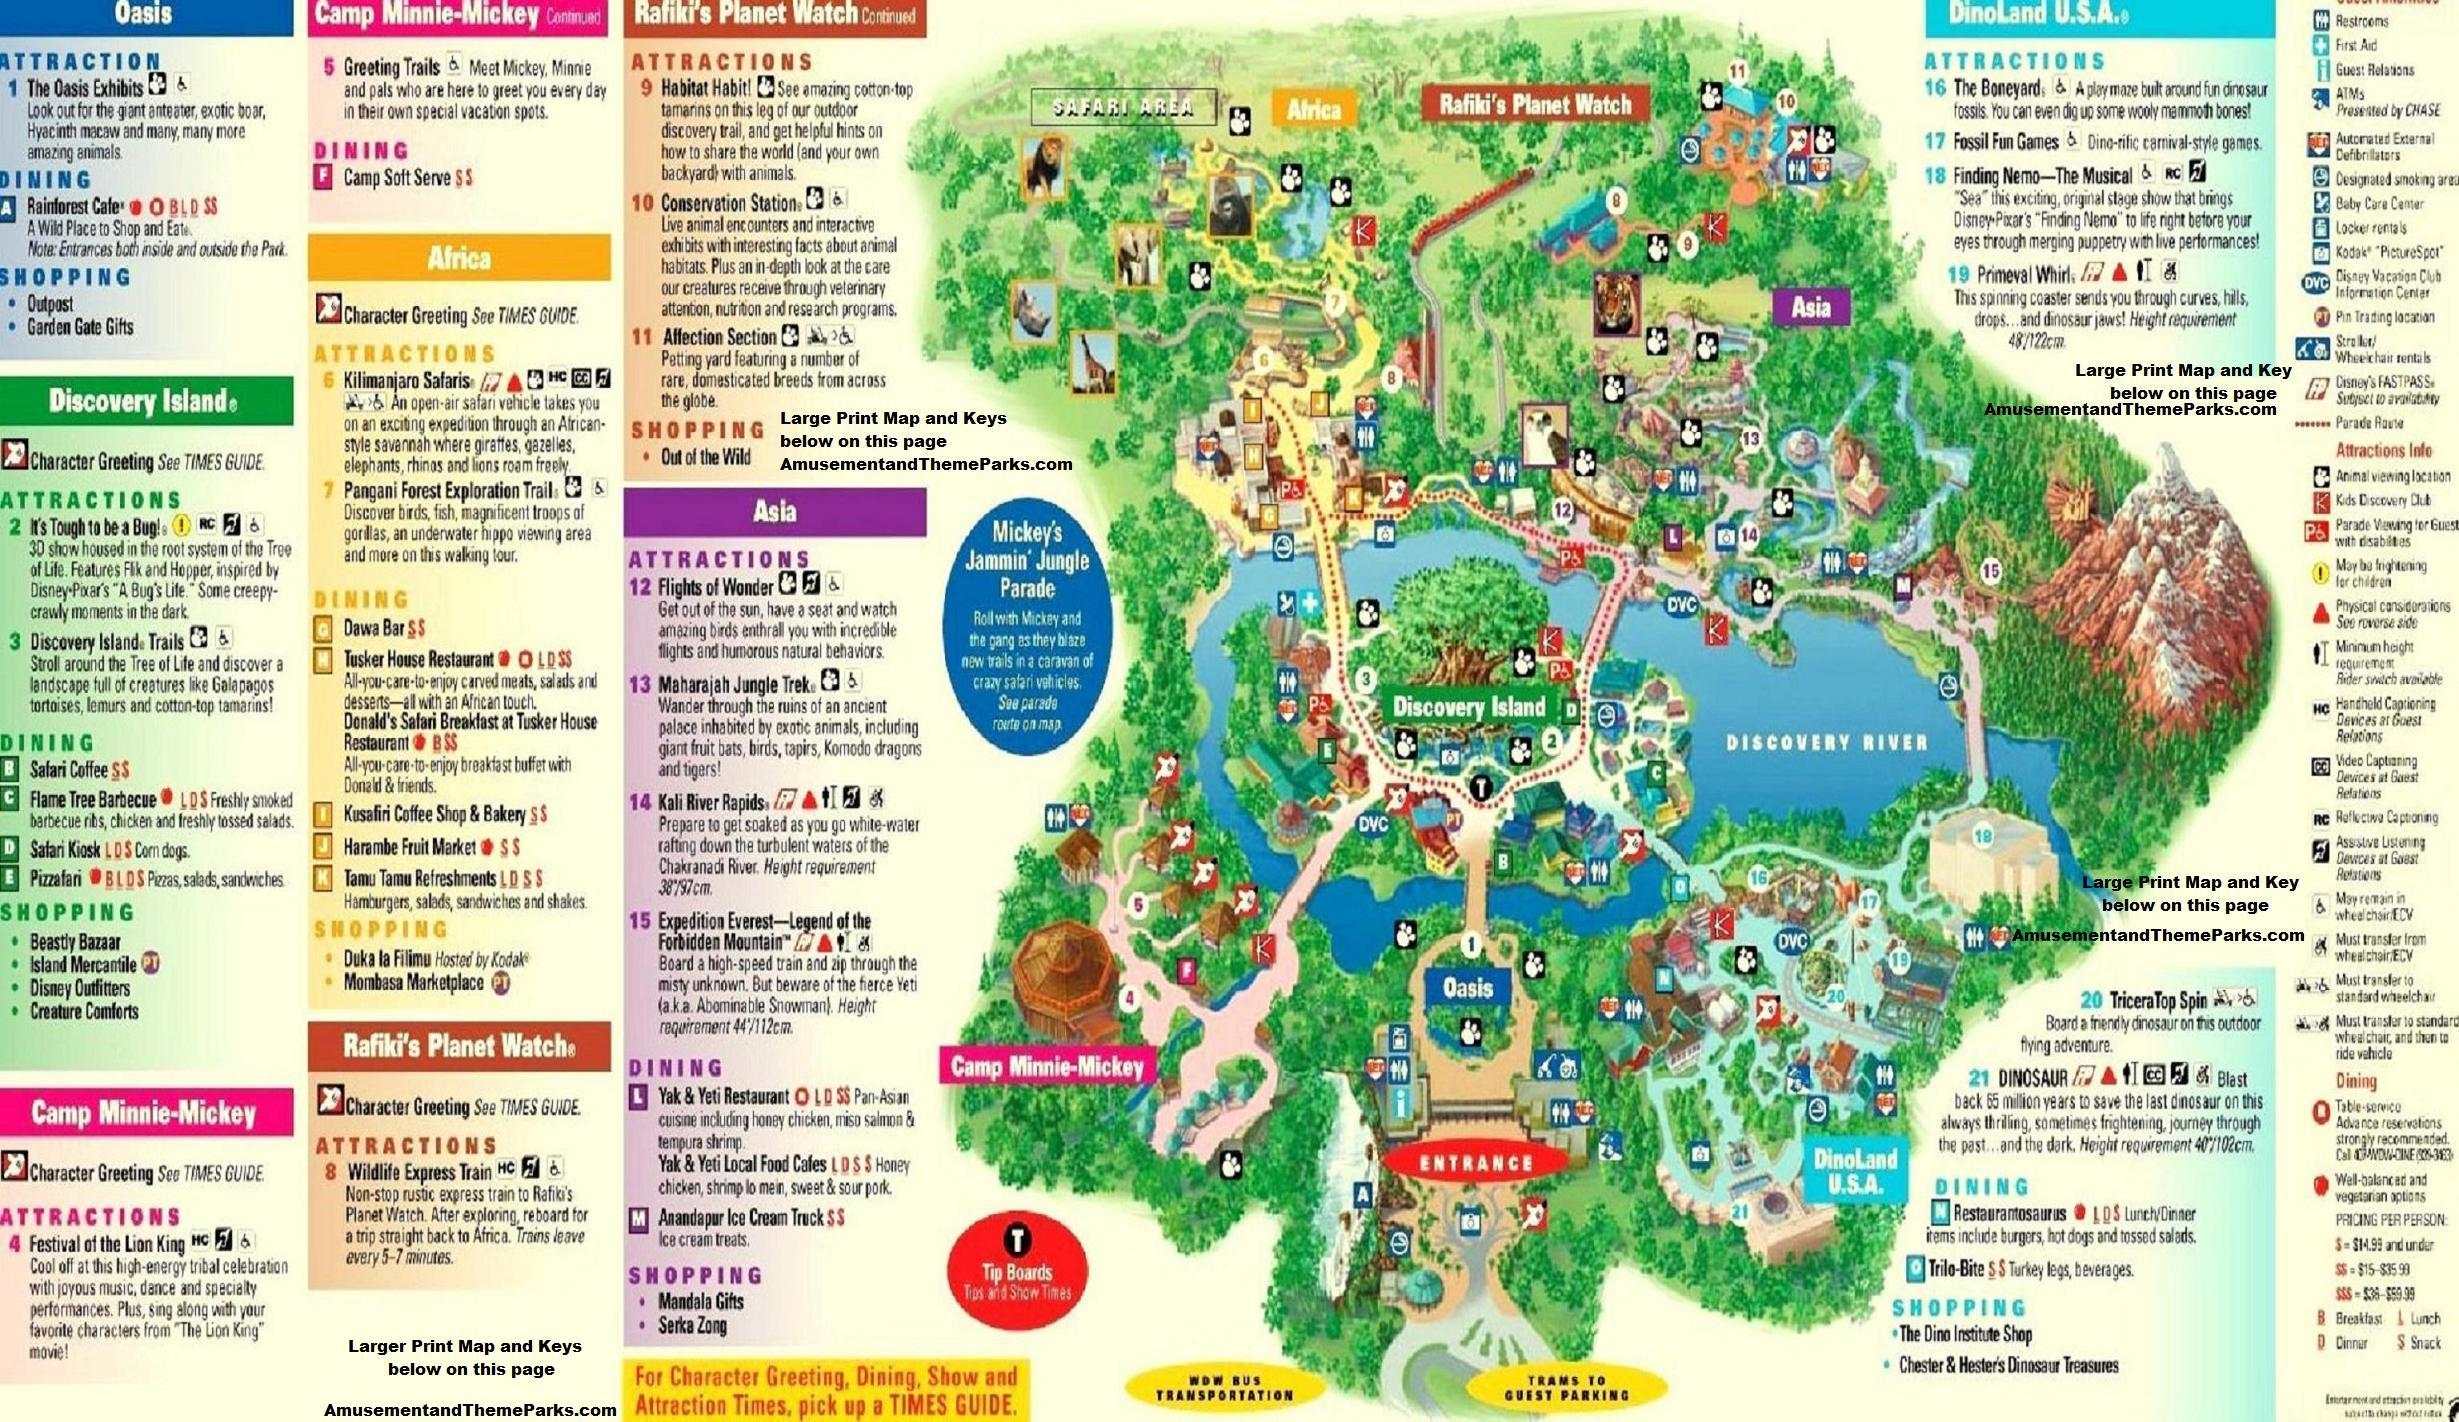 5 Useful Things You Can Learn from Disney Park Maps - MickeyBlog.com